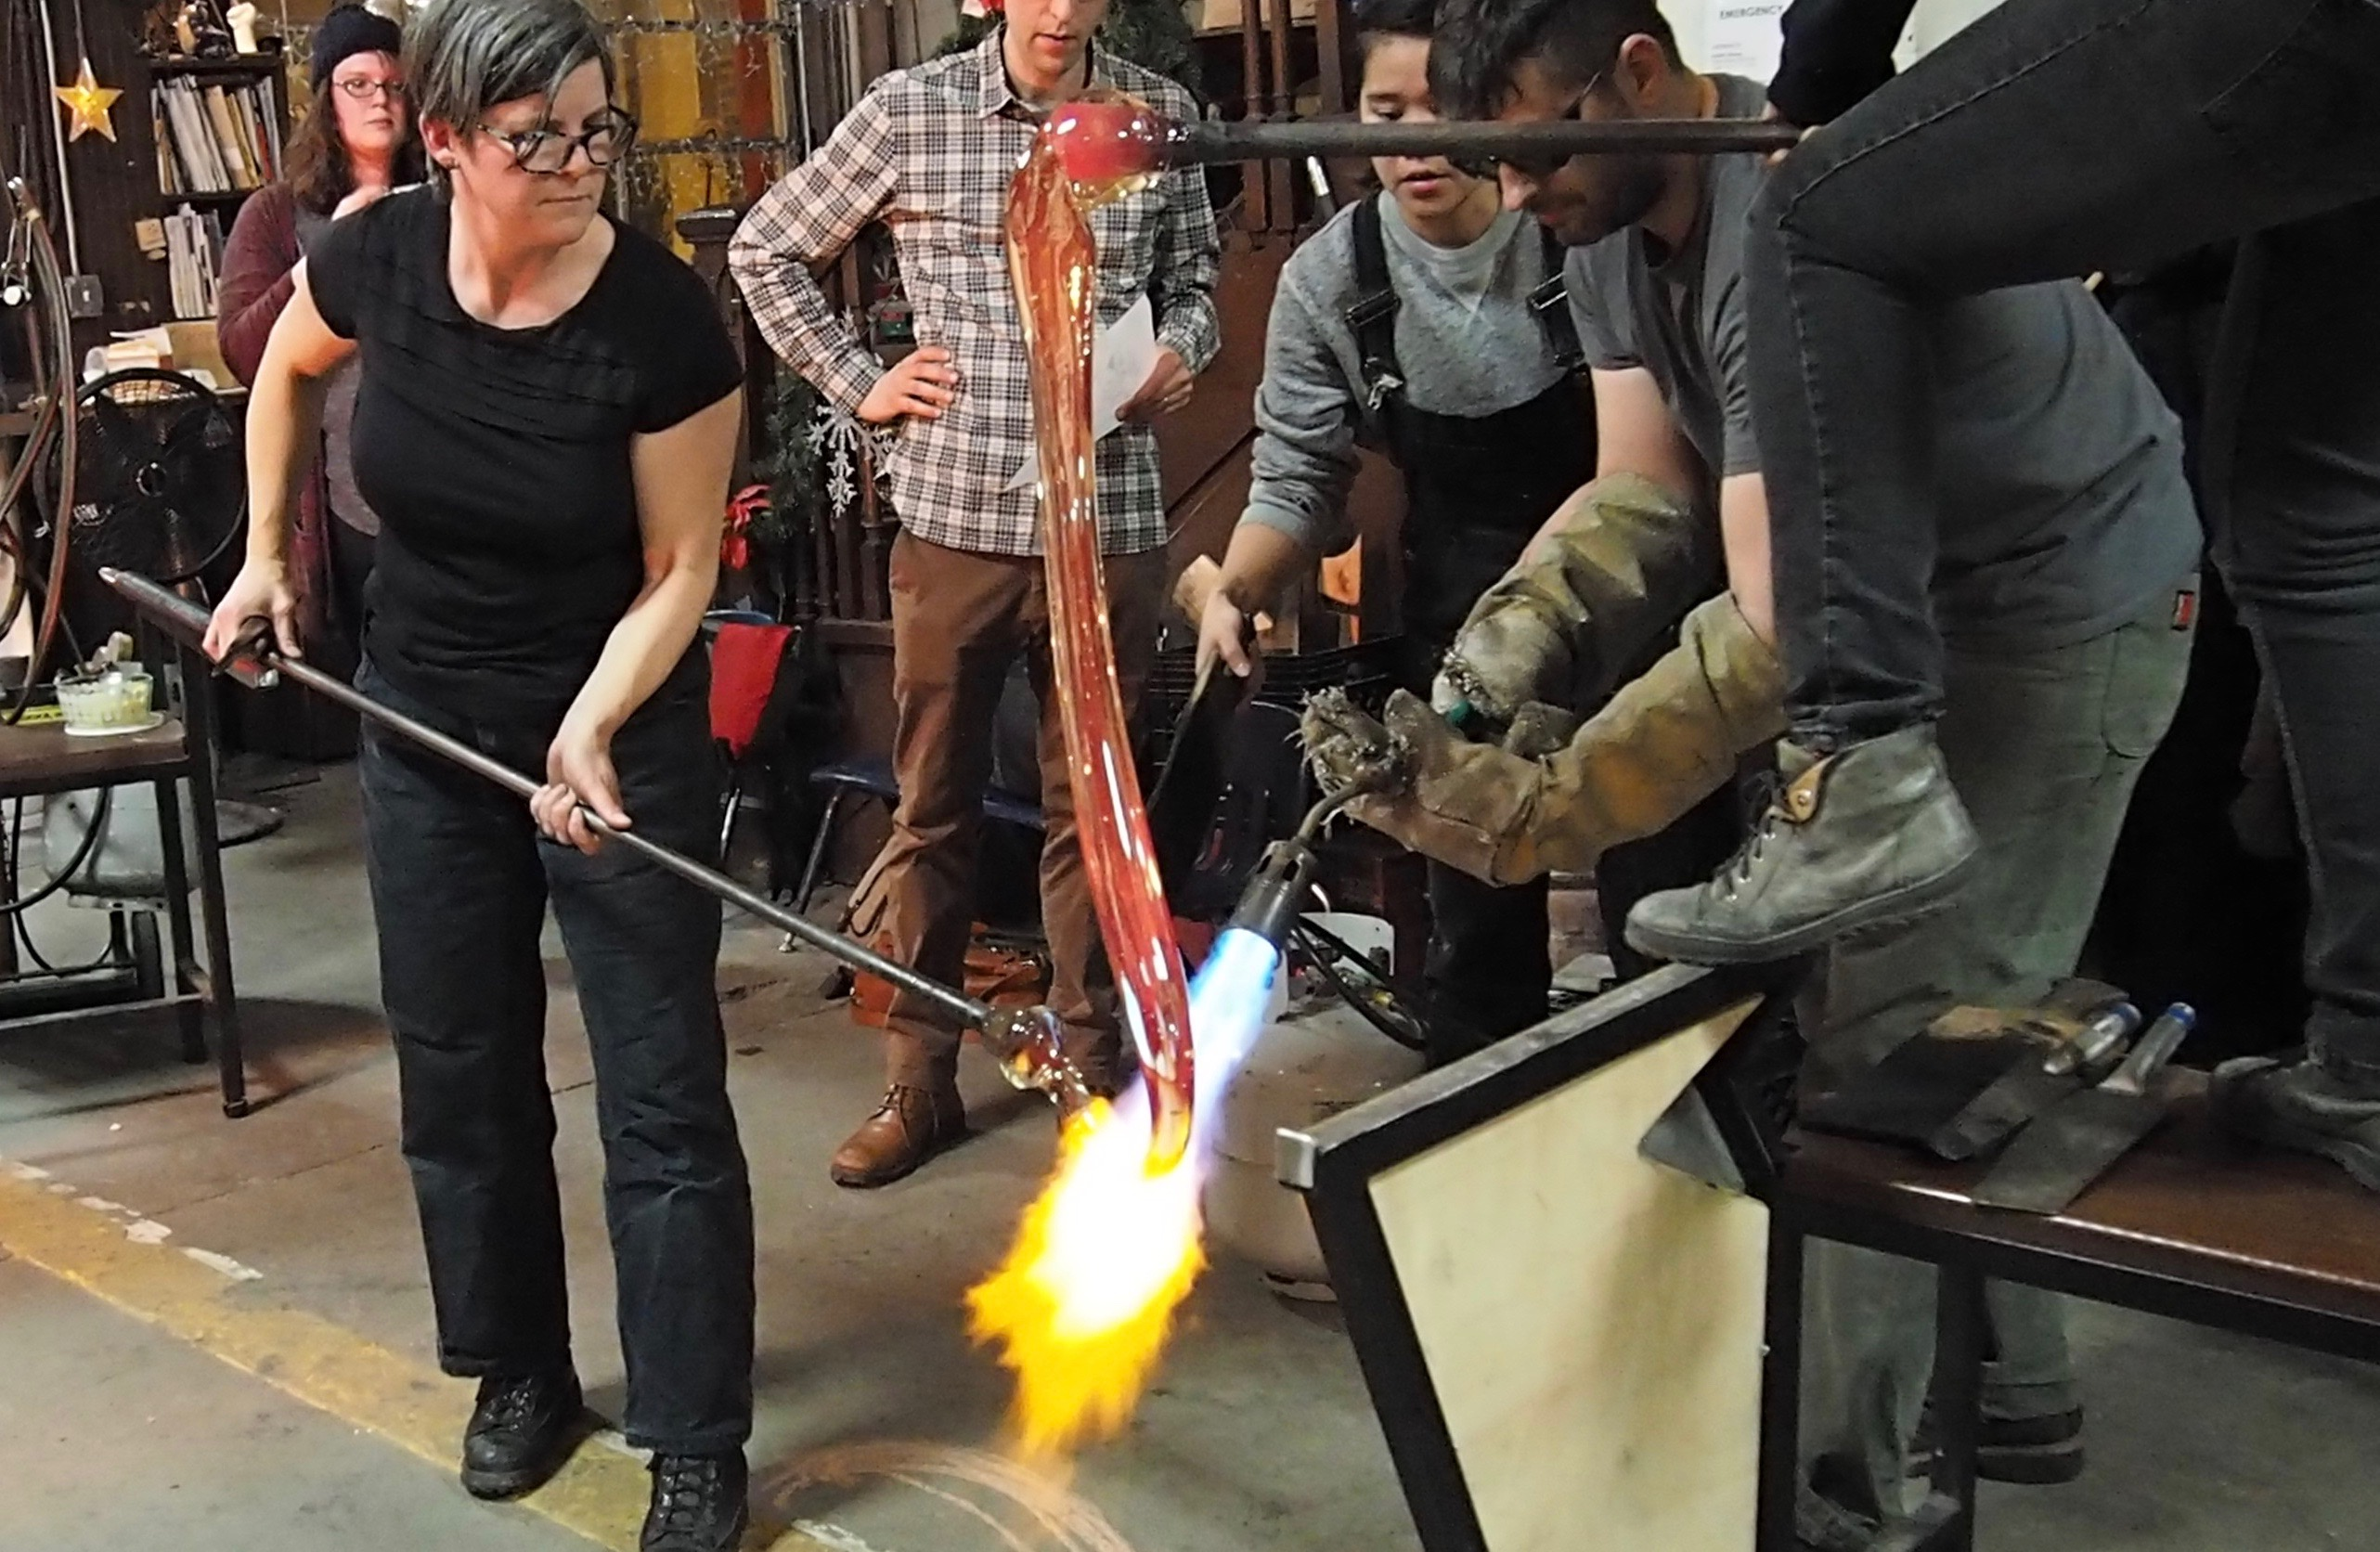 Pouring the glass waterfall in artist Beth Lipman's studio.